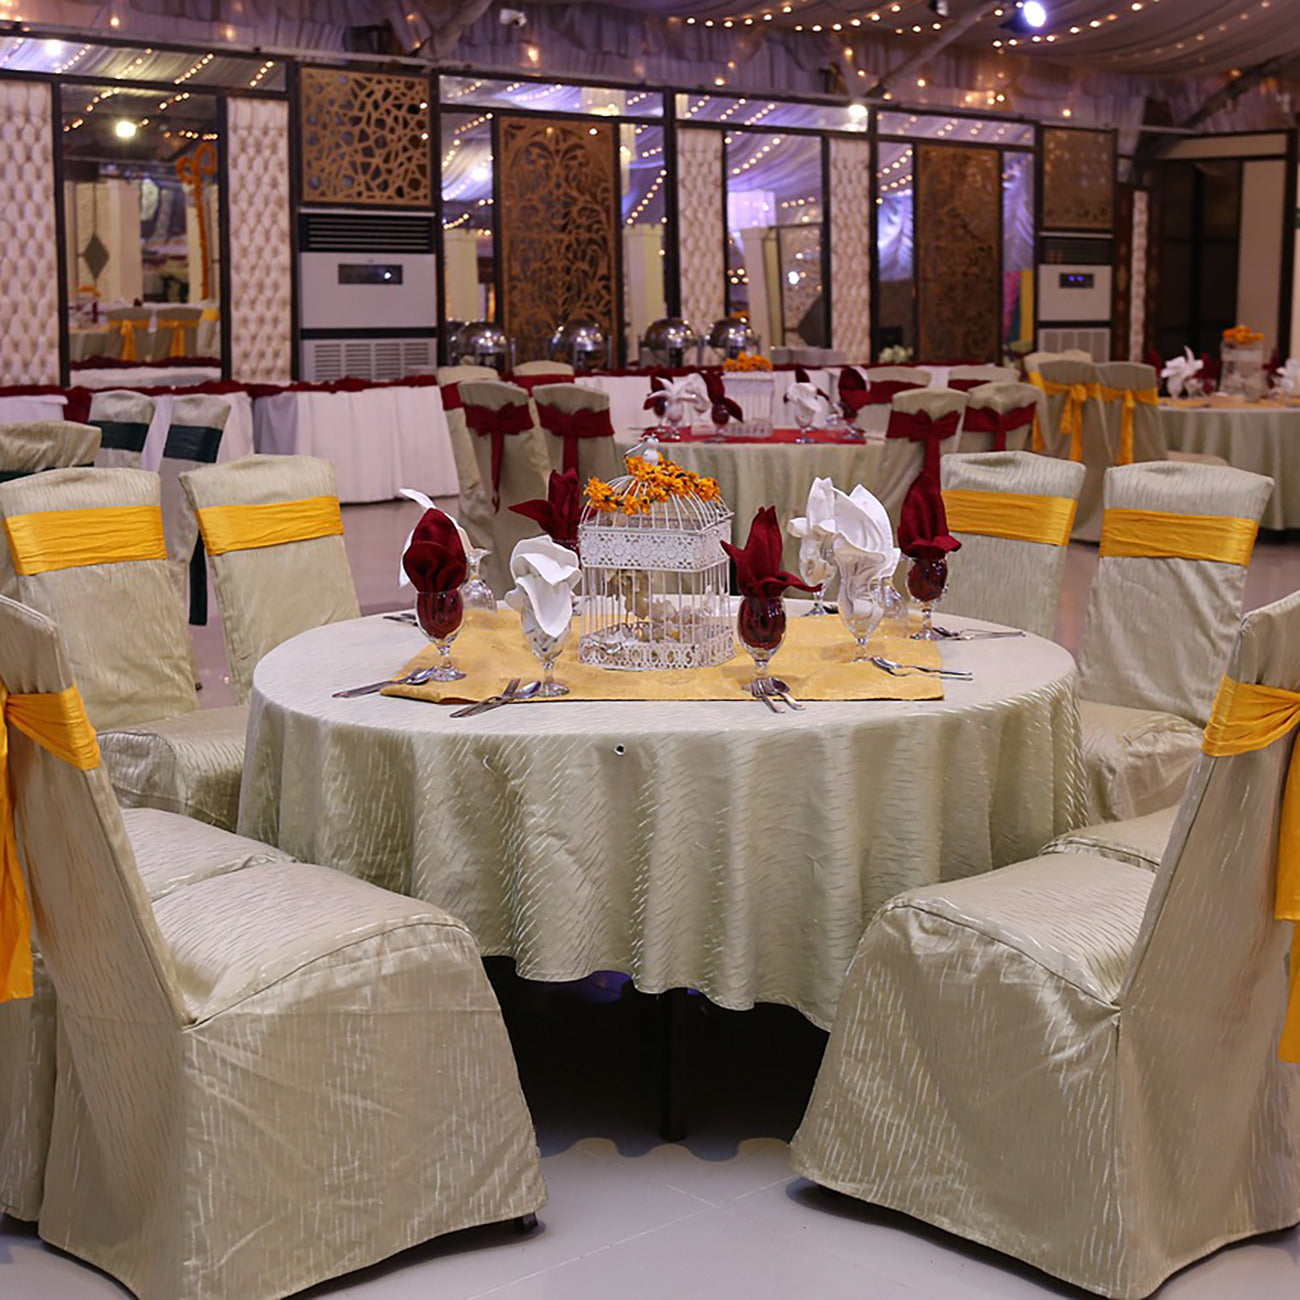 Decorated table in a banquet hall